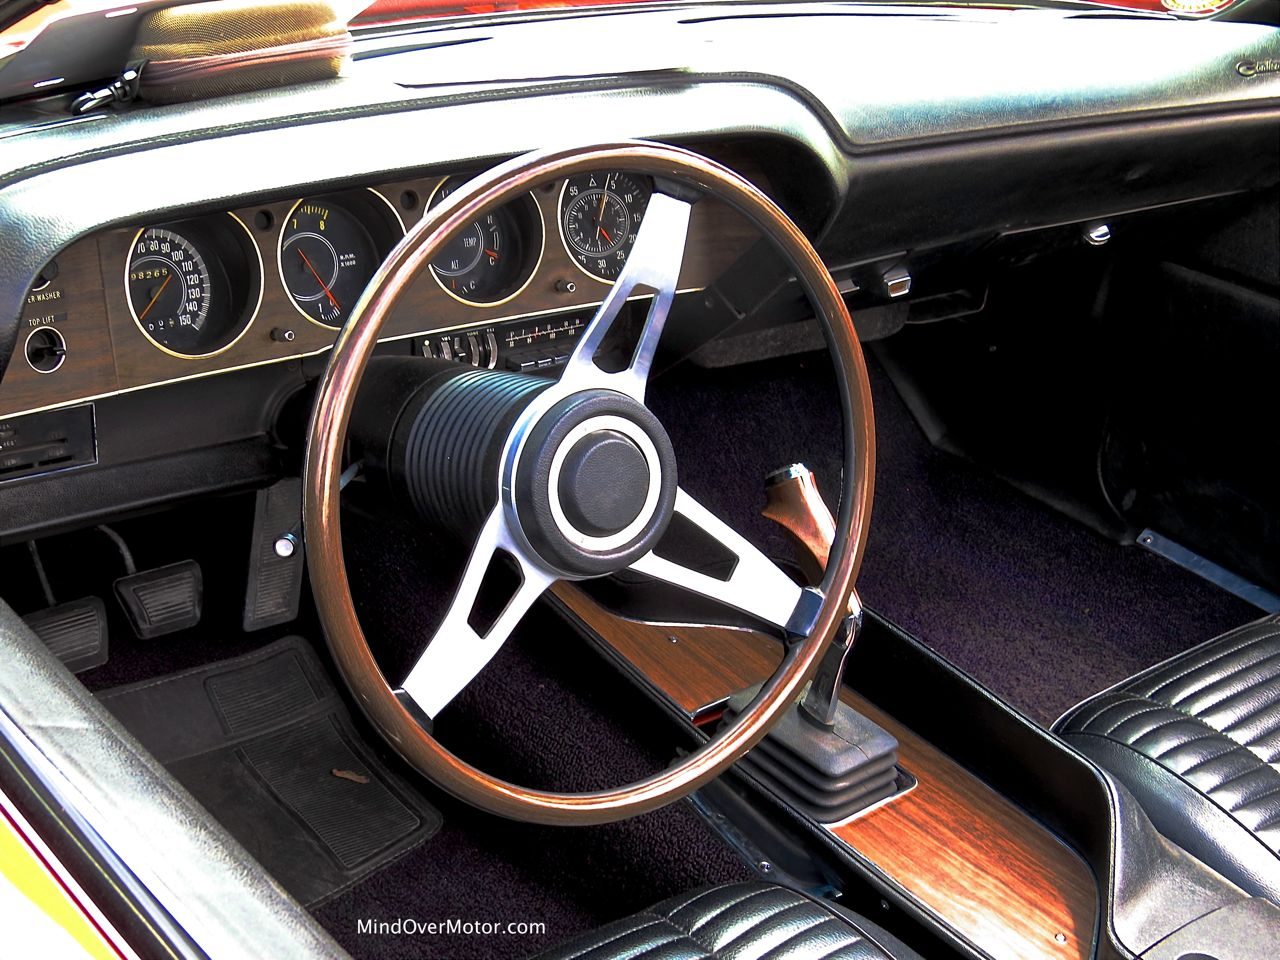 1970 Dodge Challenger R:T Convertible Instrument Panel